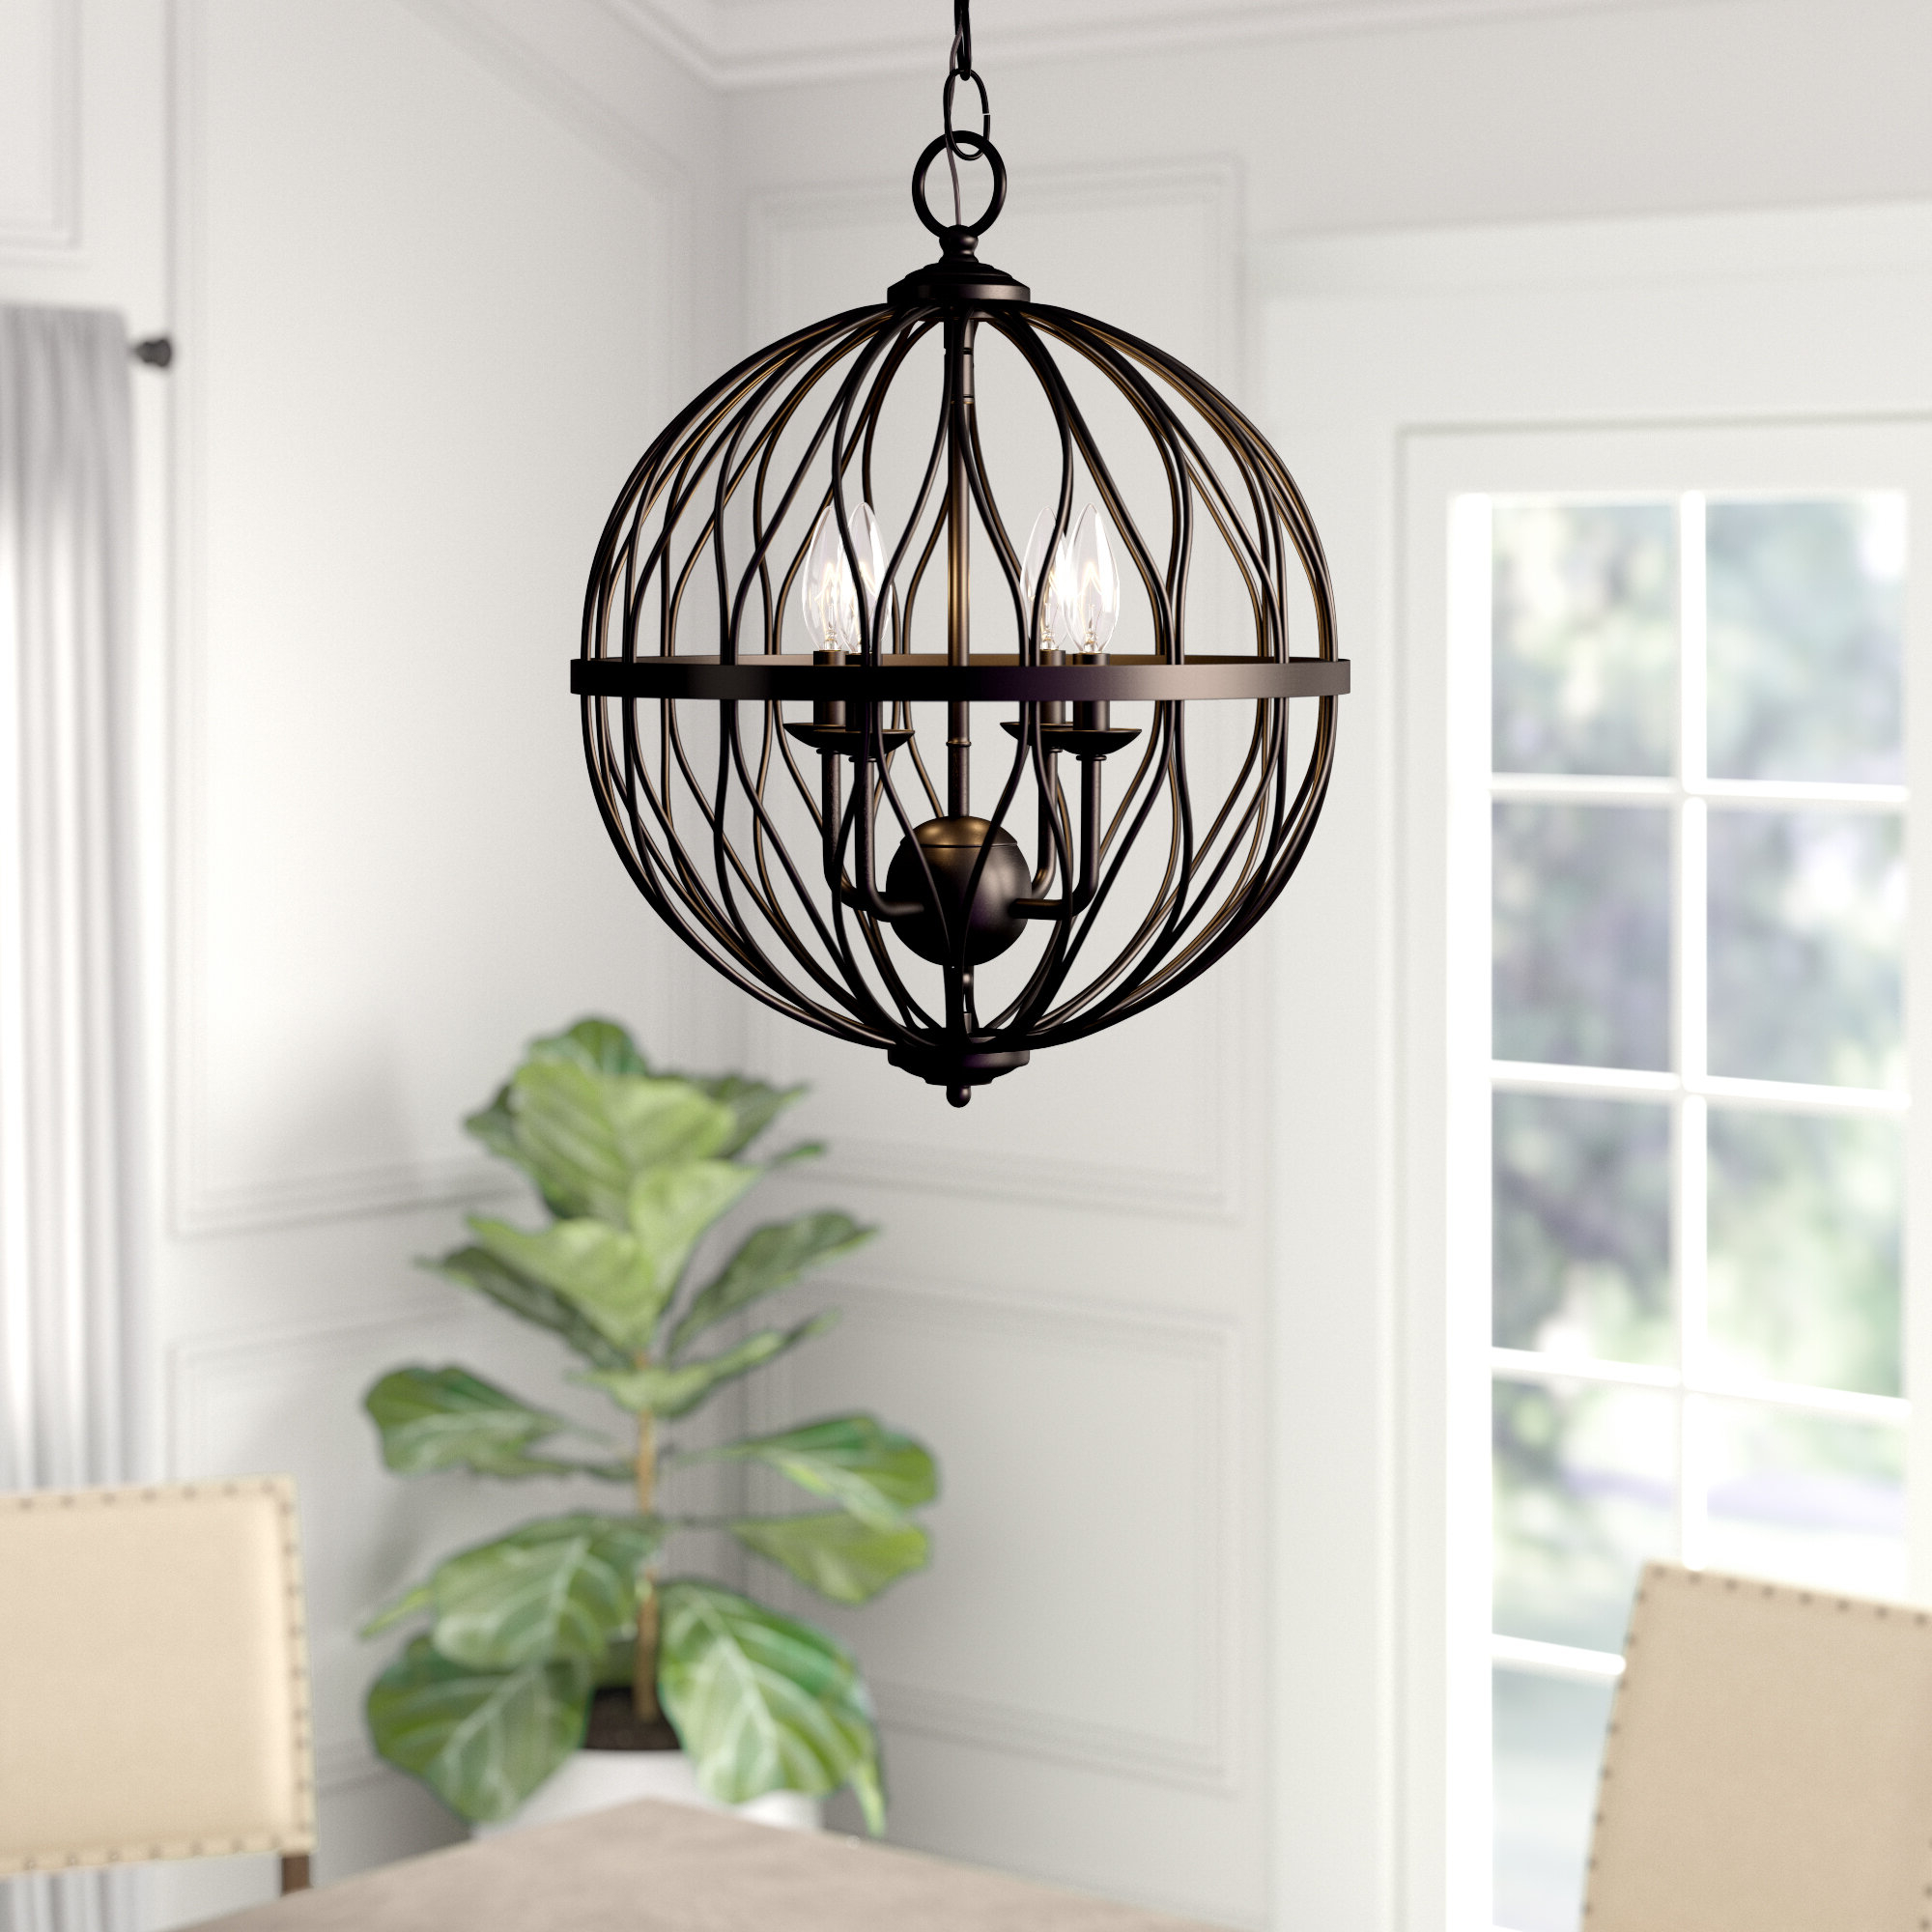 Brittain 3 Light Globe Chandelier For Favorite Shipststour 3 Light Globe Chandeliers (Gallery 6 of 20)